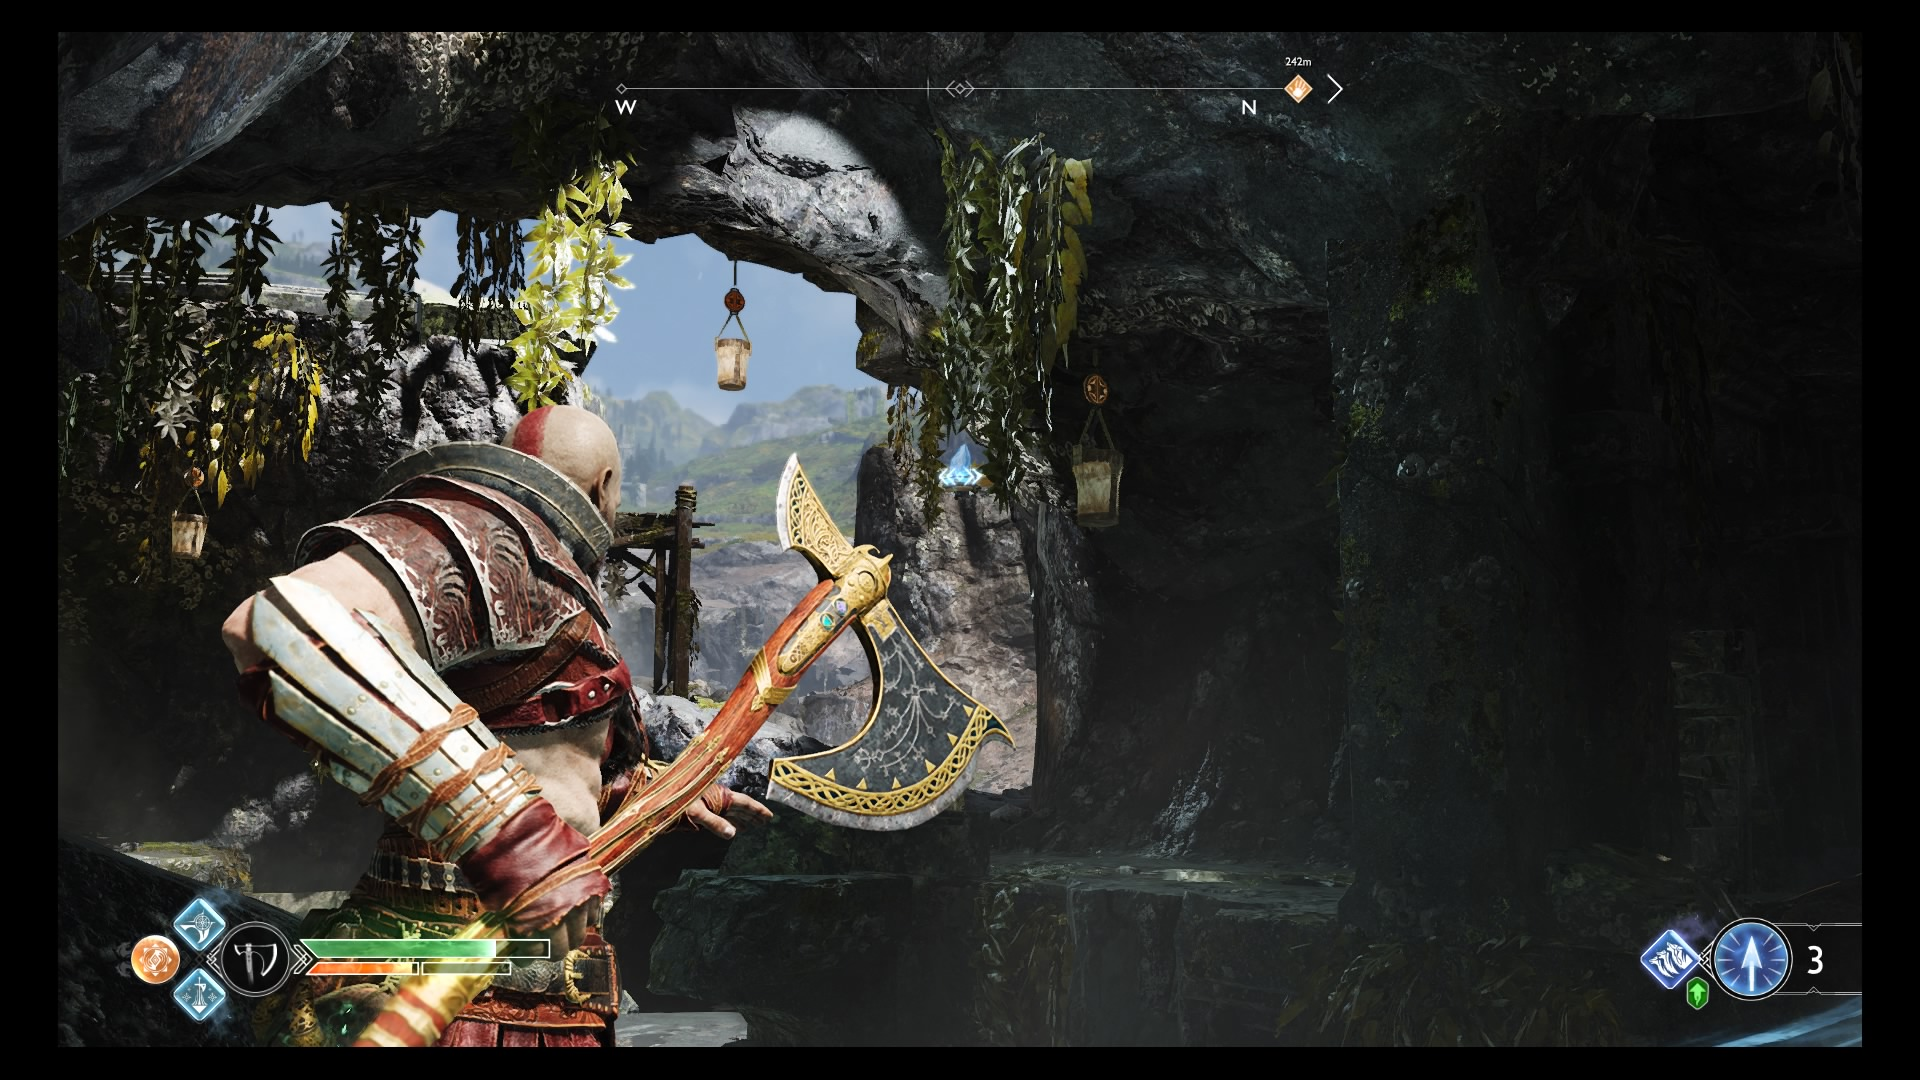 God of War Light Elf Outpost guide - How to open the chest